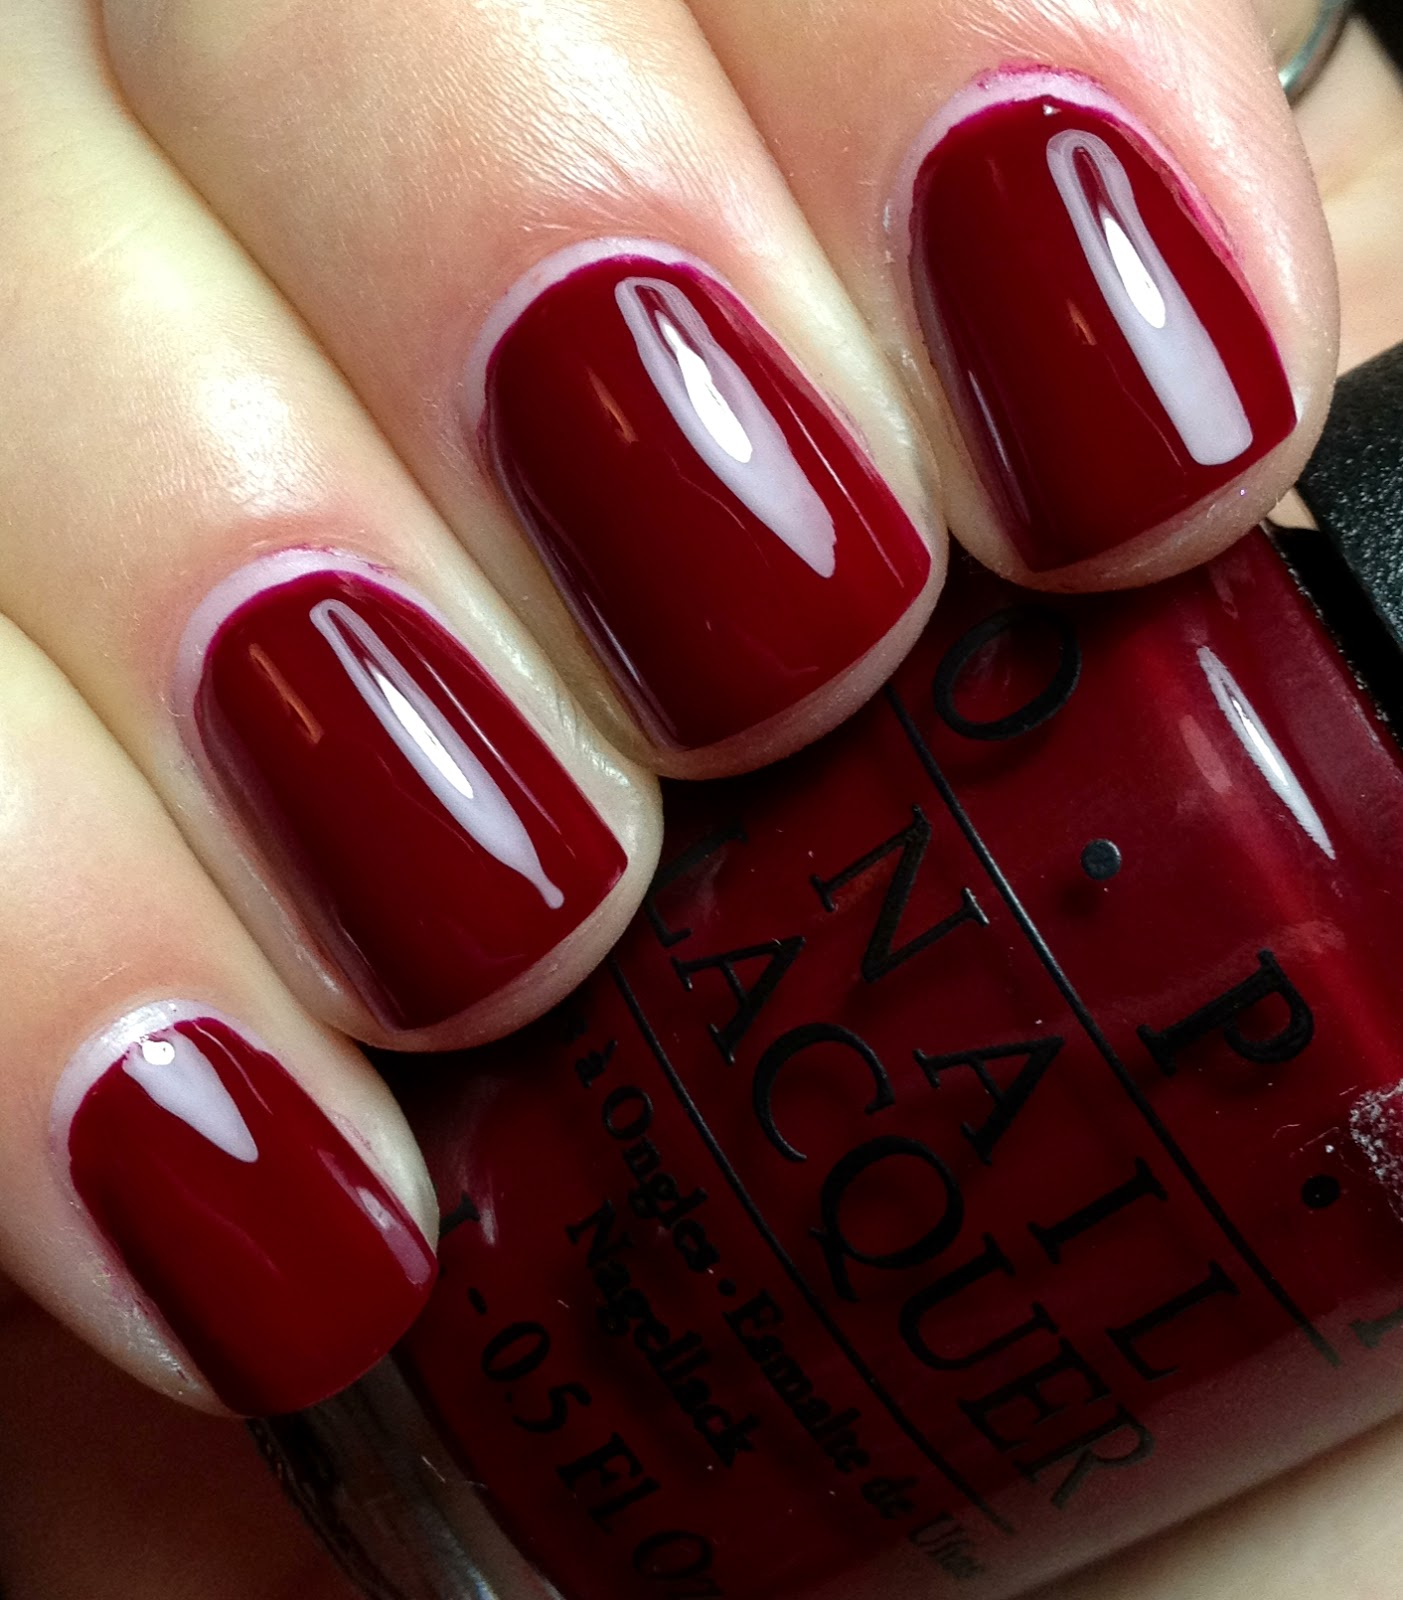 Swatches By An OPI Addict: OPI Classics Collection Swatches